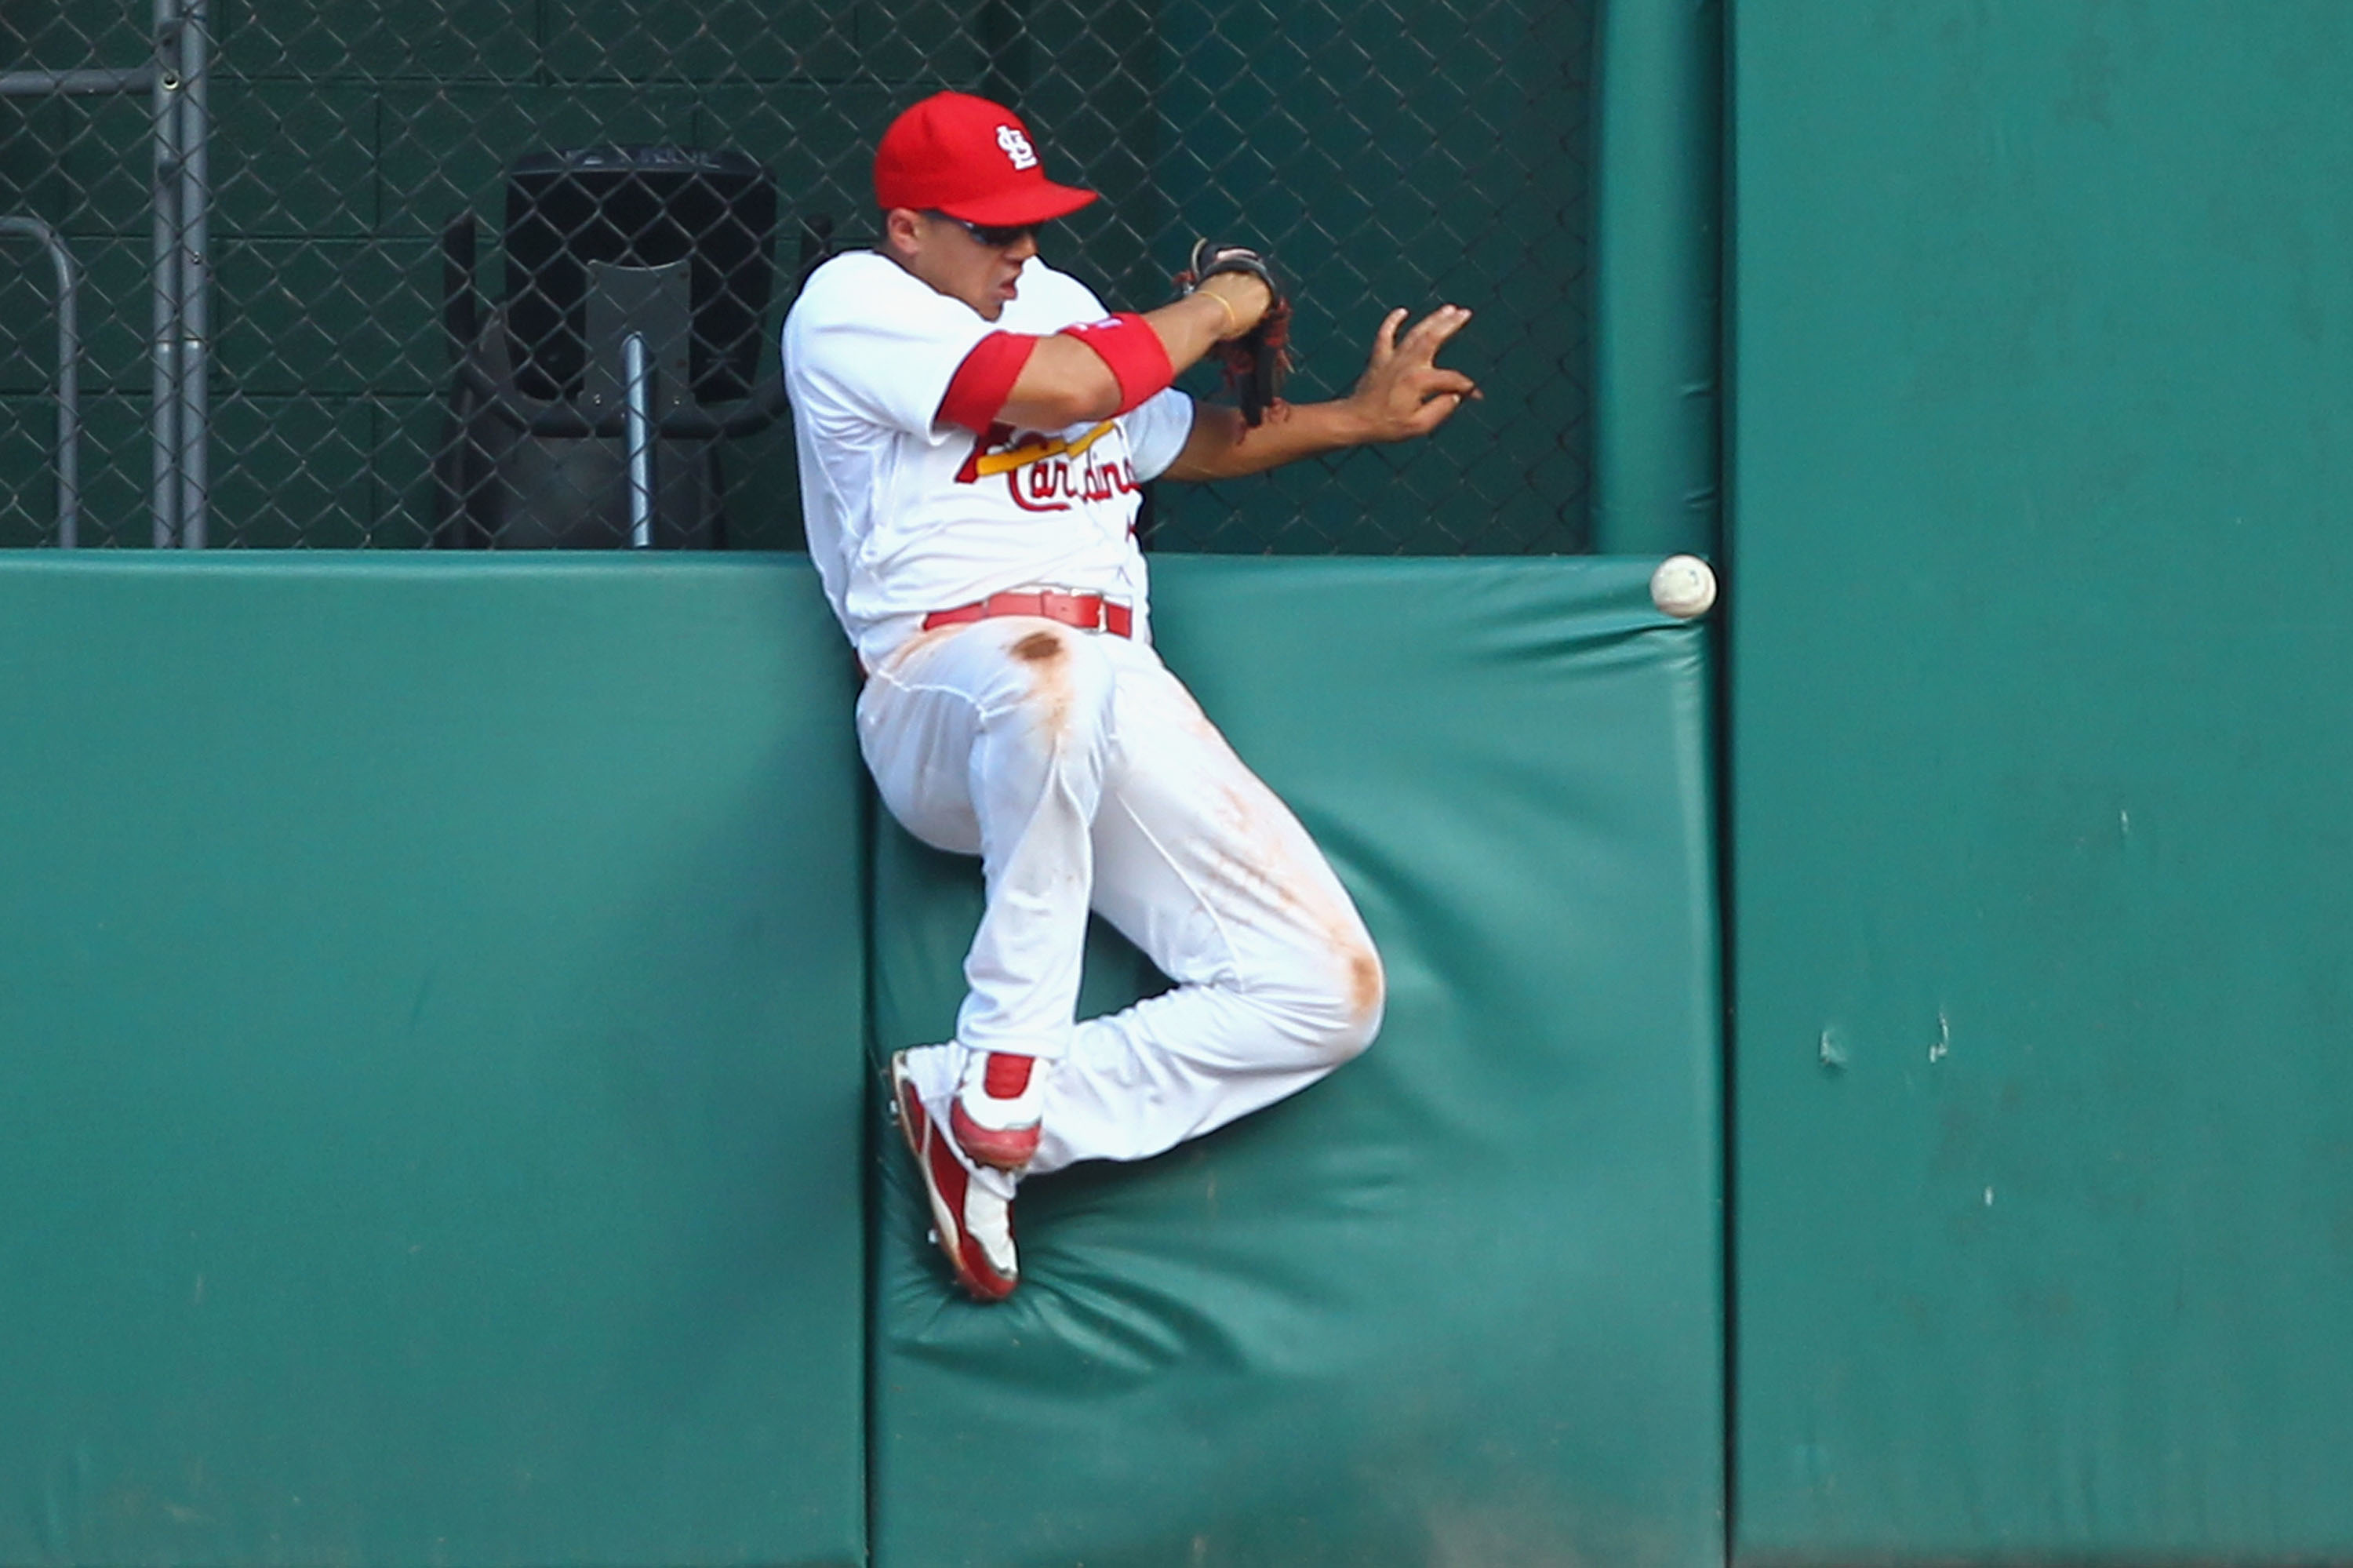 The Cardinals might not want to go to war with Jon Jay and Allen Craig as their DHs.